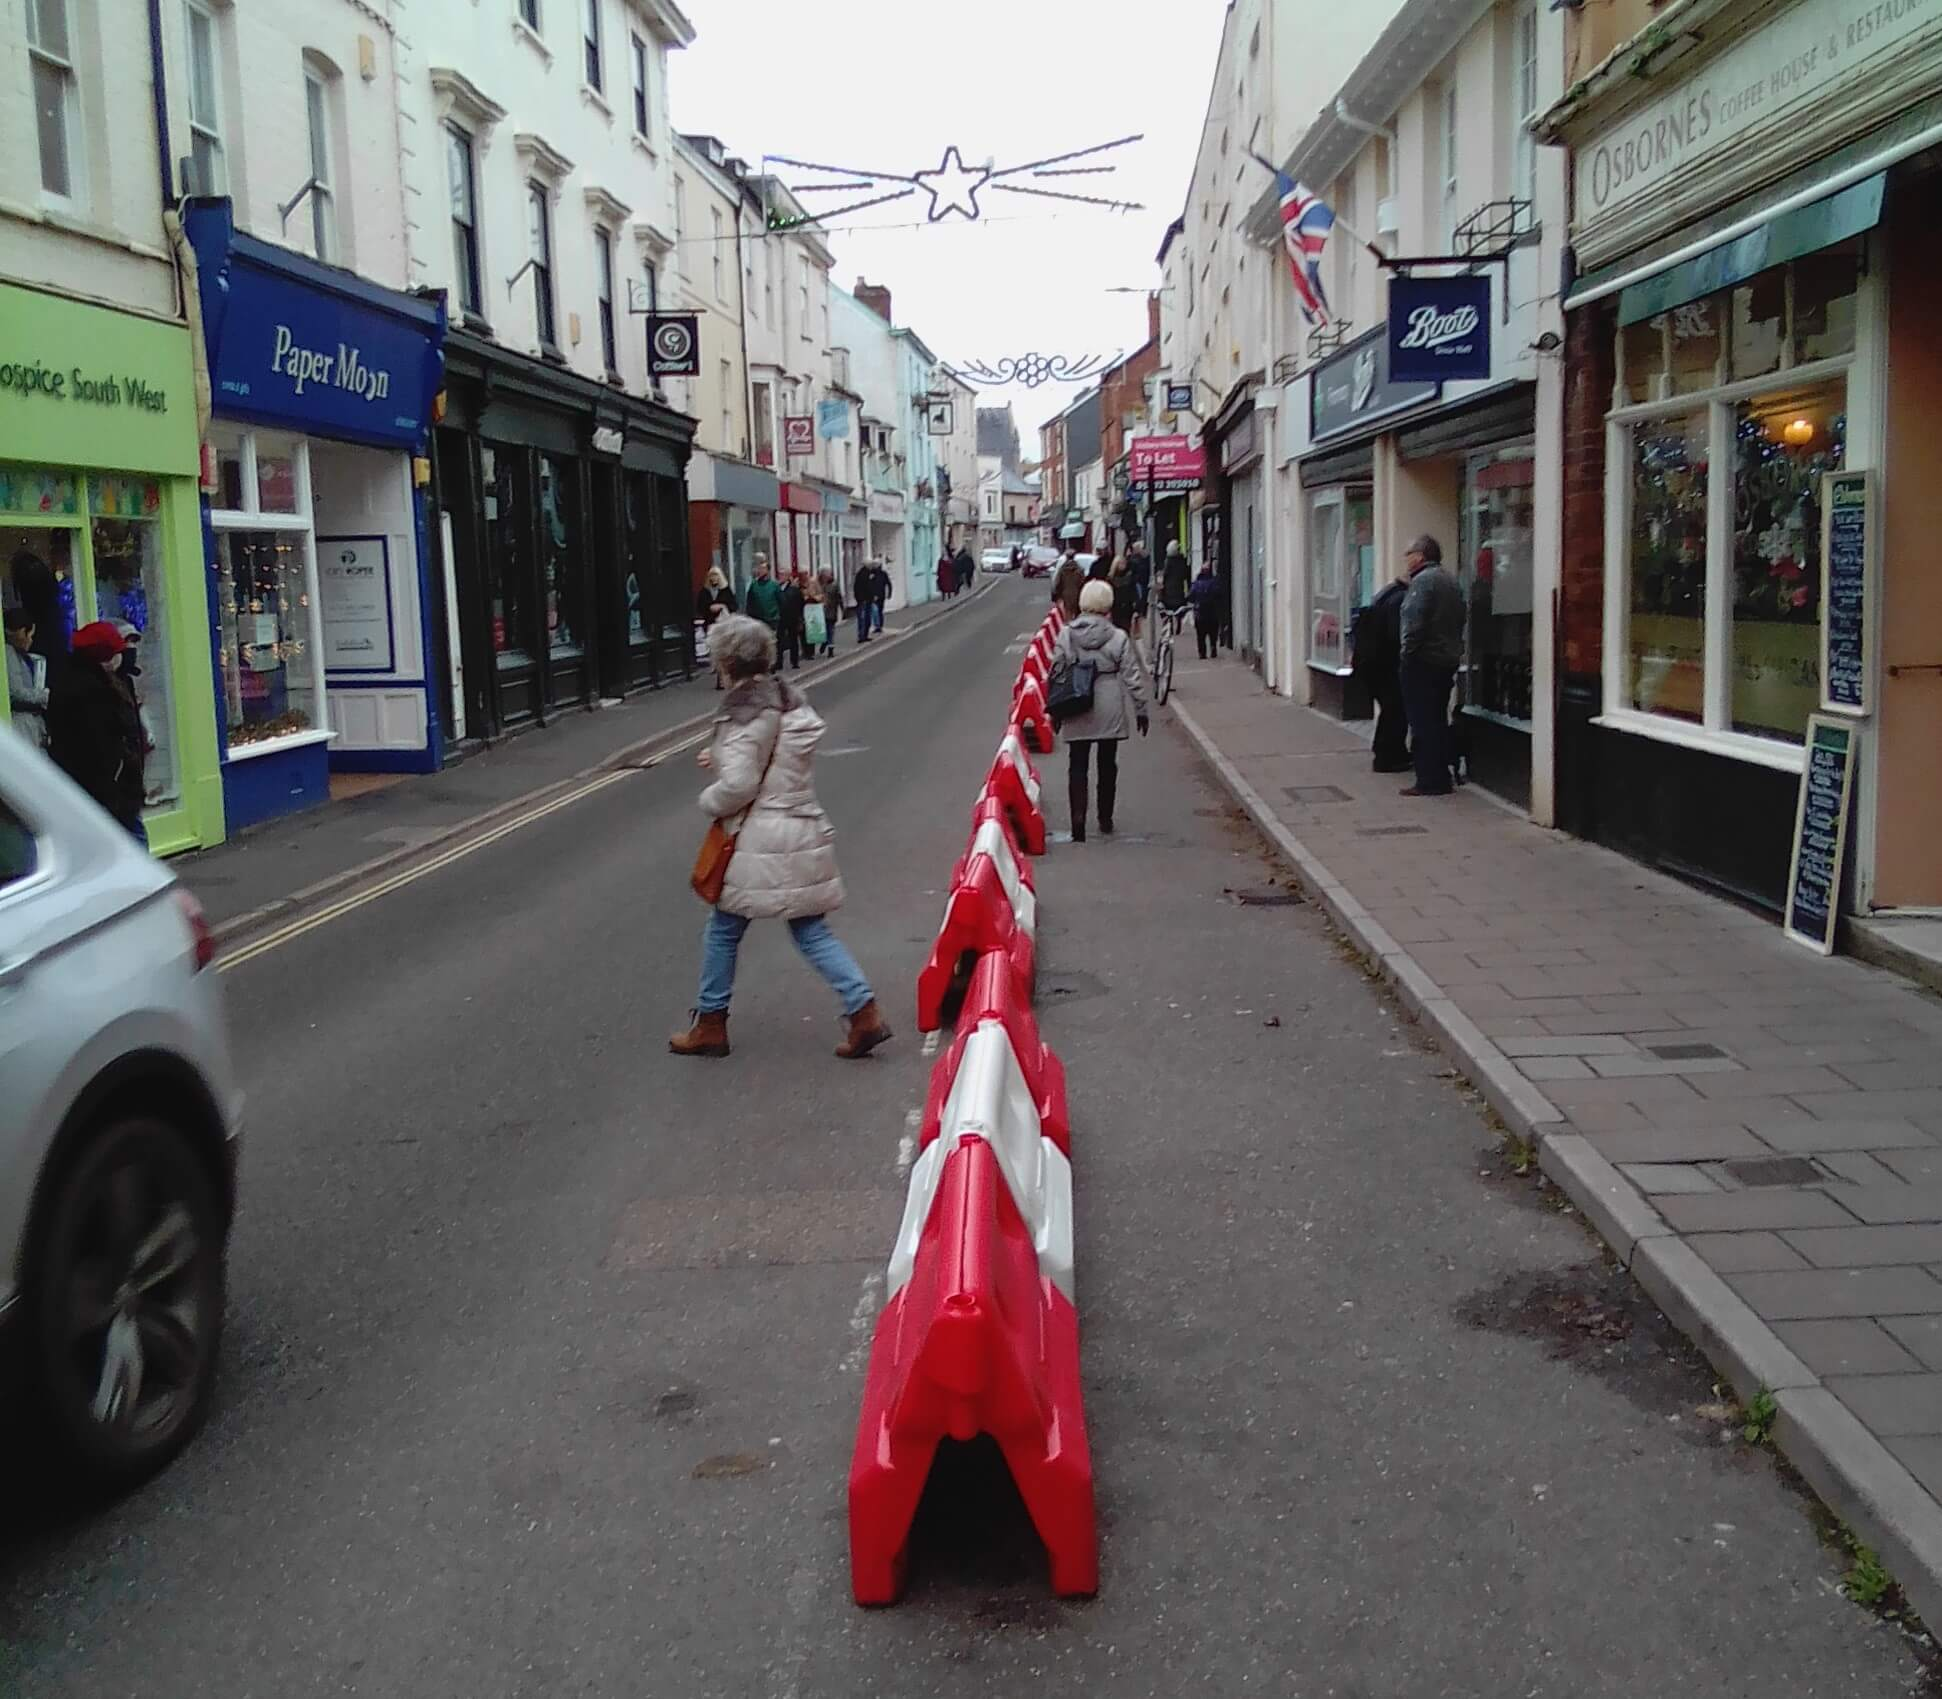 Social distancing measures in Fore Street, Sidmouth. Image: DCC